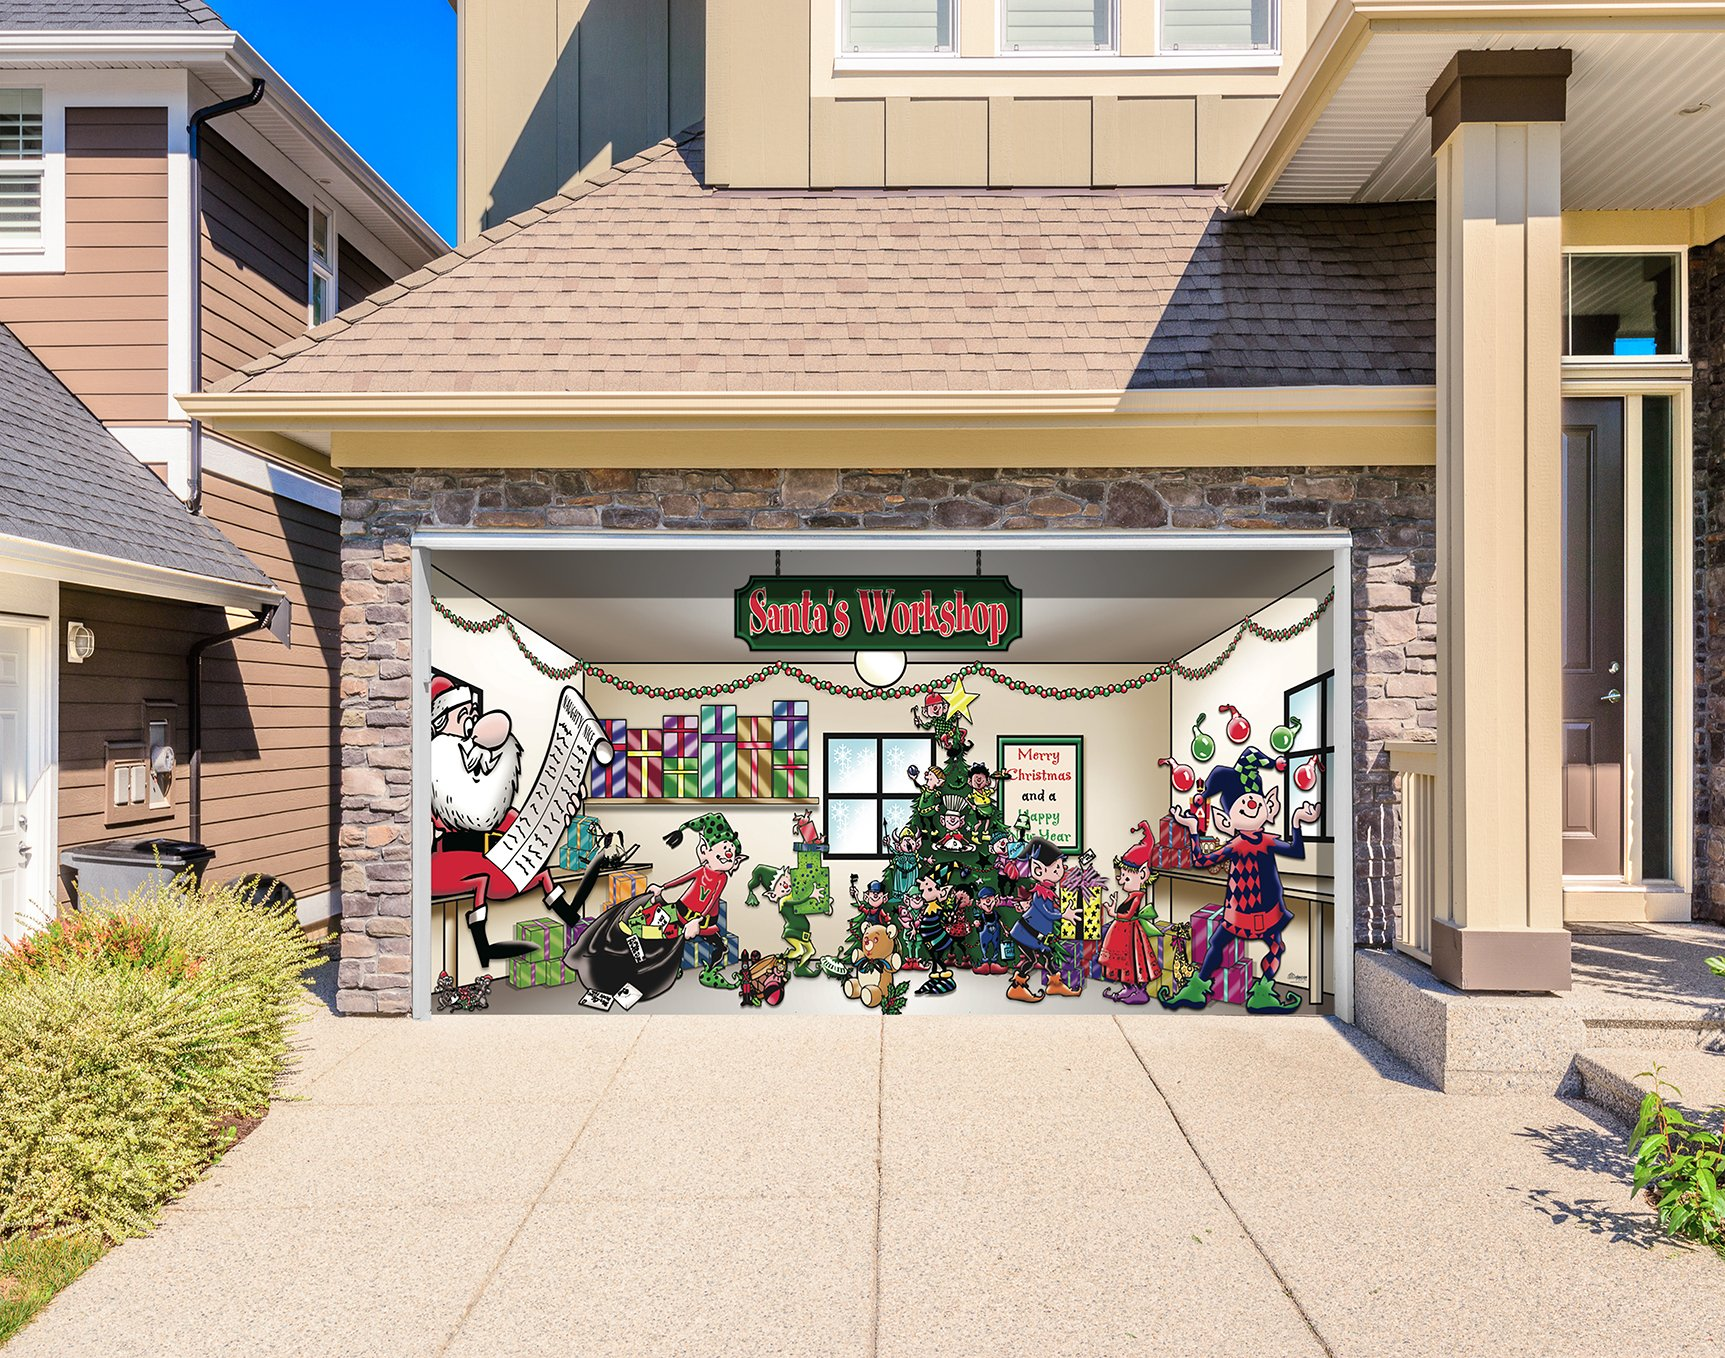 Outdoor Christmas Holiday Garage Door Banner Cover Mural Décoration 8'x16' - Santa's Workshop Outdoor Christmas Holiday Garage Door Banner Décor Sign 8'x16' by Victory Corps